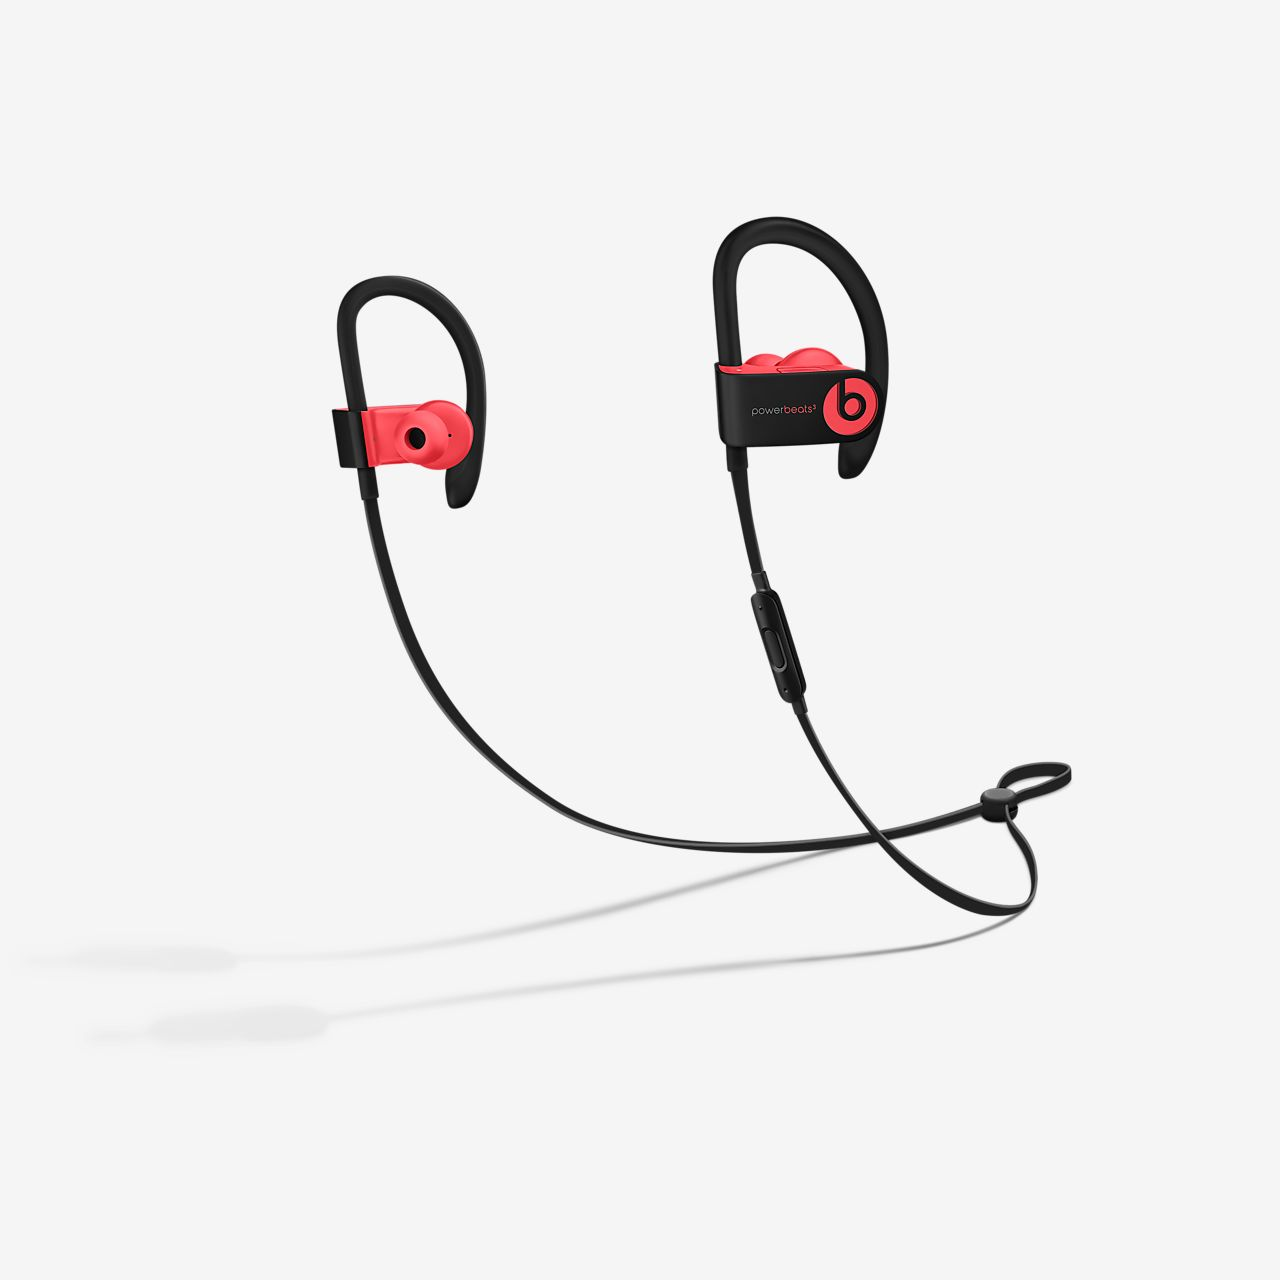 Powerbeats3 Wireless Beats by Dre Earphones. Nike.com 7ff3abb3fa